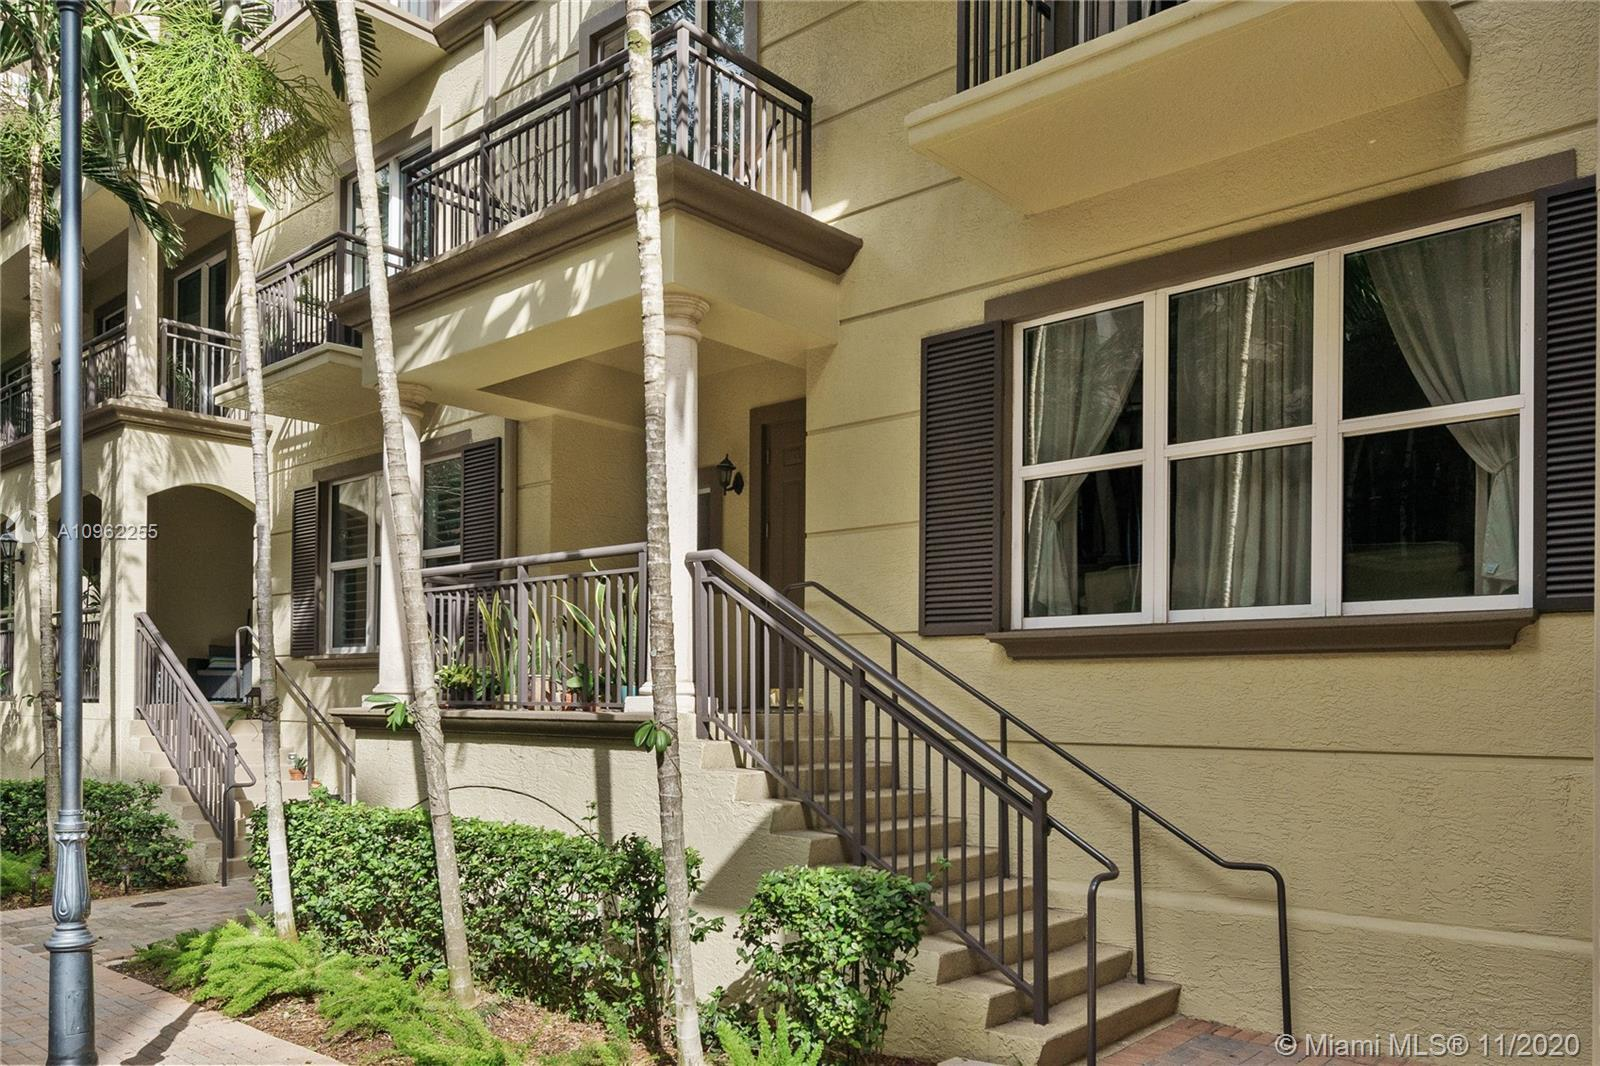 * 72 Hour Sale - Call immediately * This amazing unit is located in a Gated, Pet-Friendly Community